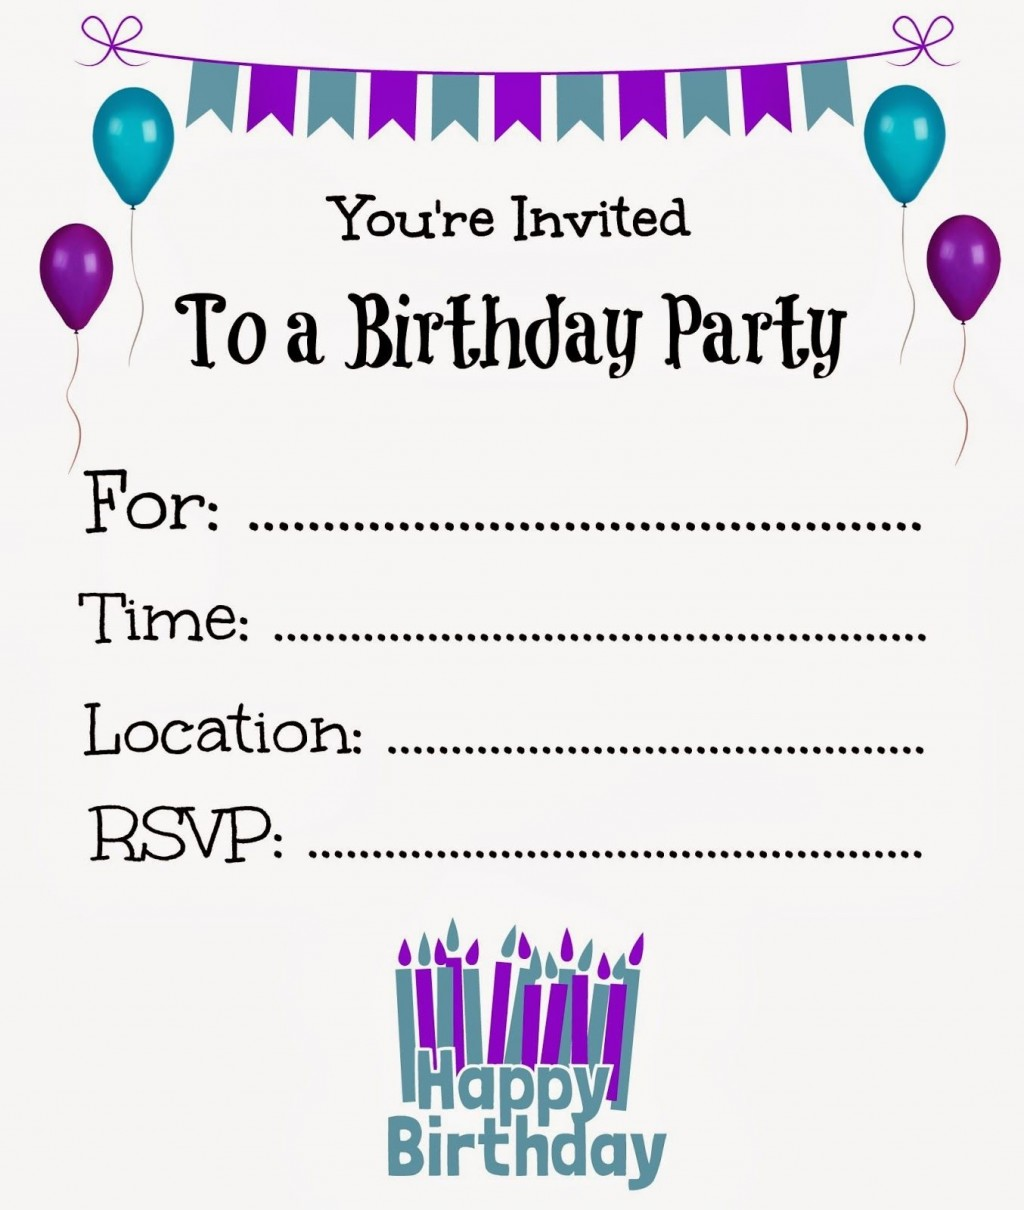 008 Stunning Free Printable Party Invitation Template Design  Templates Beach Spa TeaLarge